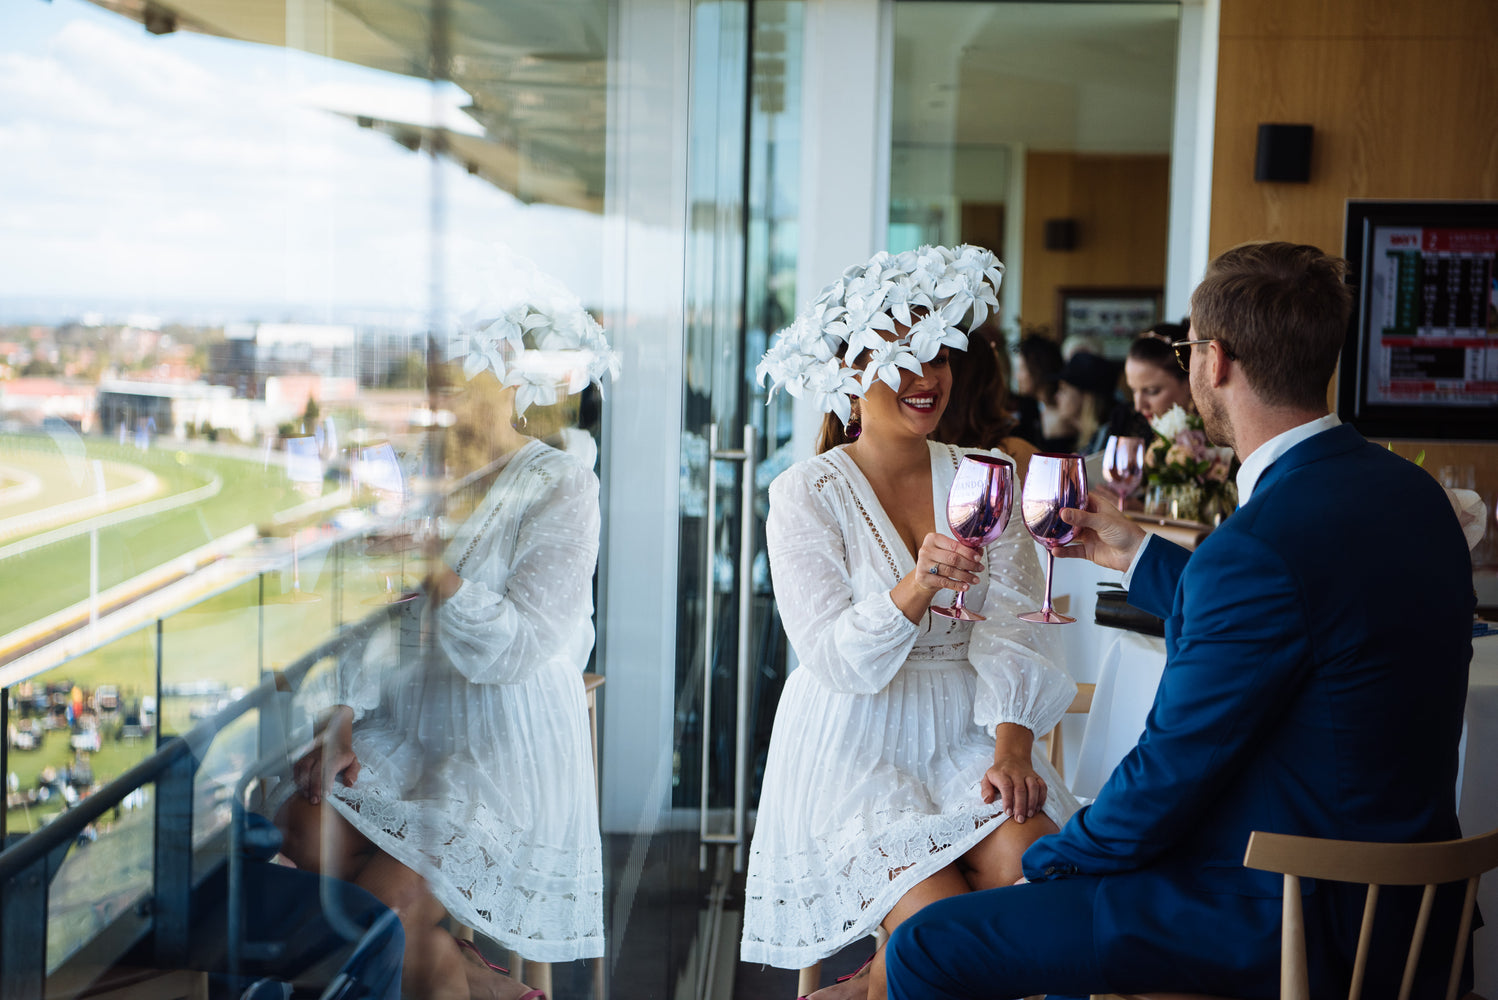 Private Suites - The Championships Day 2- Randwick Racecourse